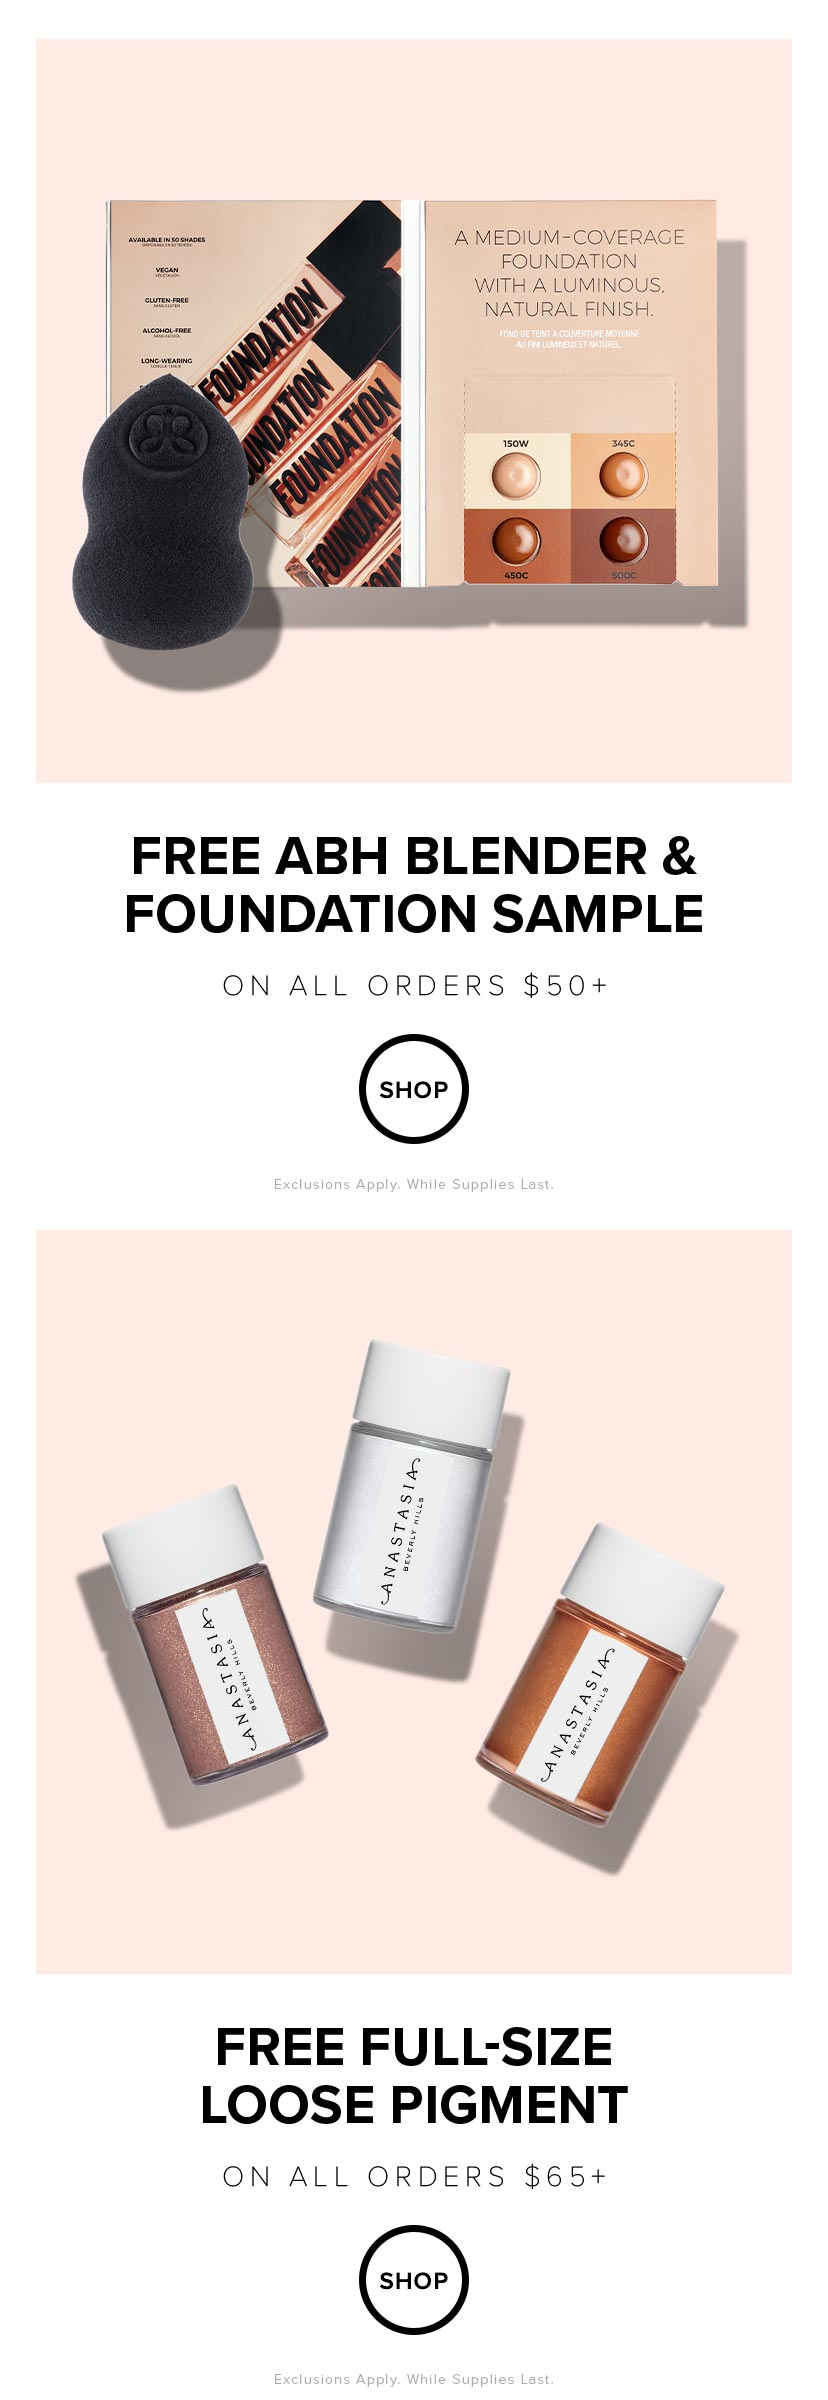 Free ABH Blender and Foundation Sample with $50 Order | Free Full Size Loose Pigment with $65 Order